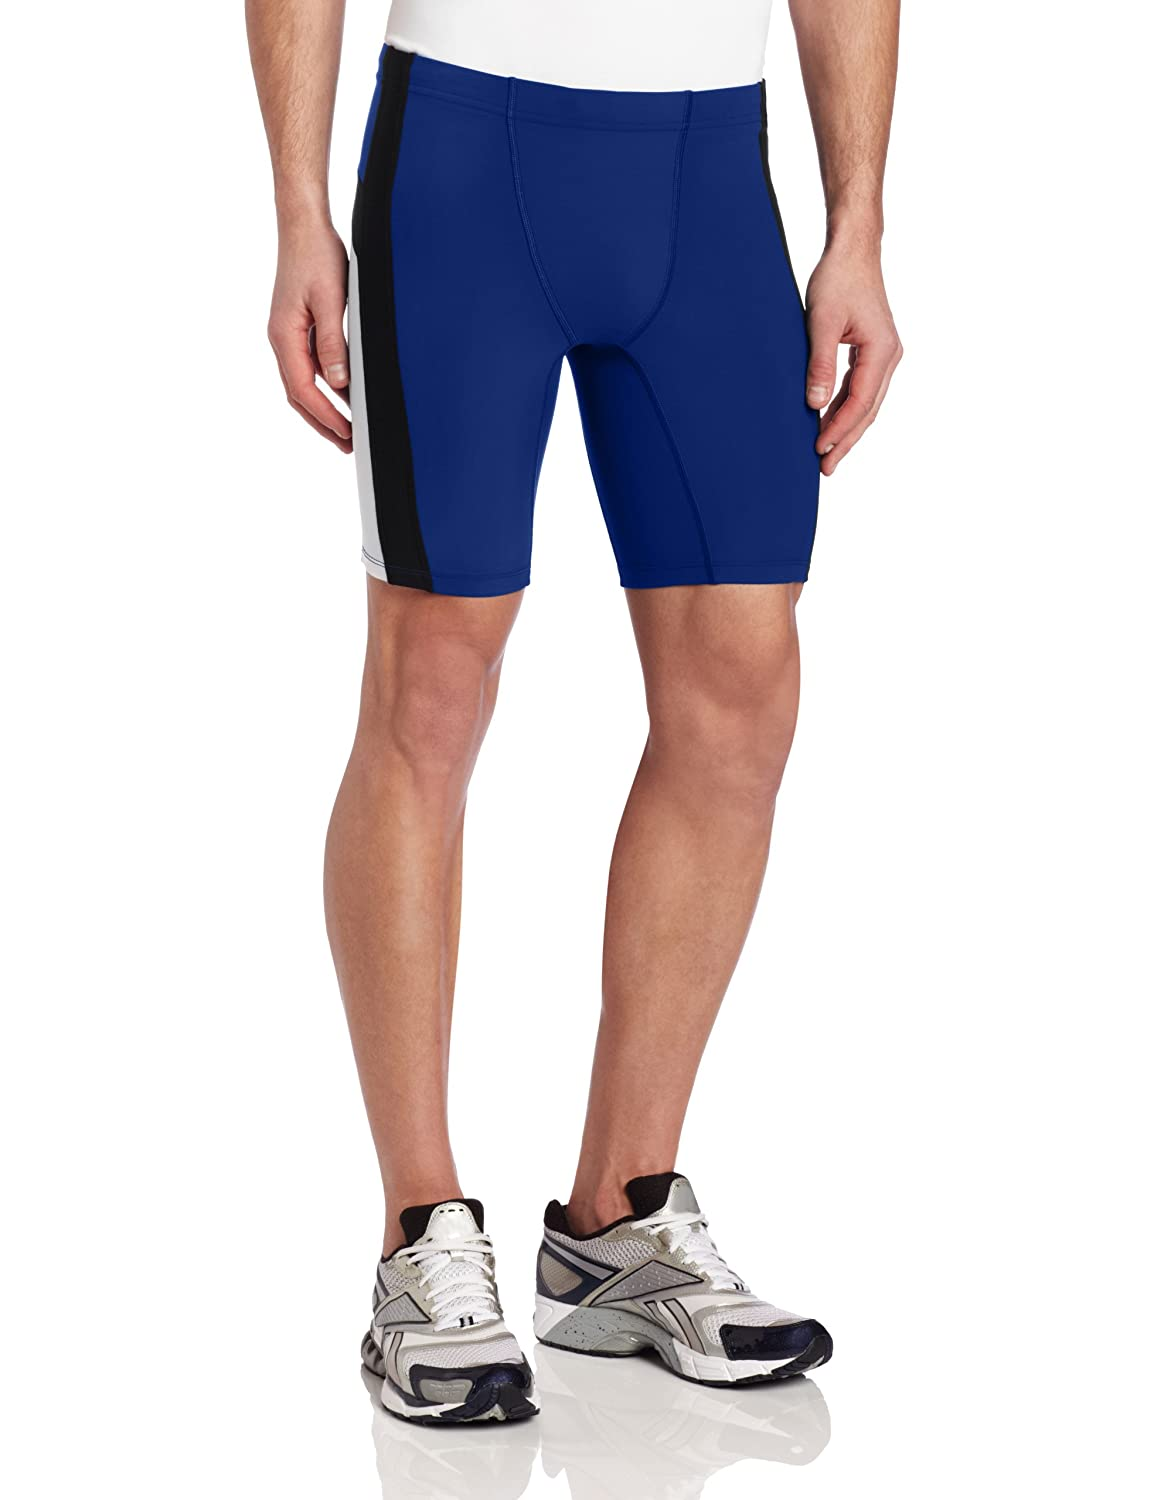 ASICS Men's Anchor Short ASICS Men' s Anchor Short ASICS Sports Apparel TF1278